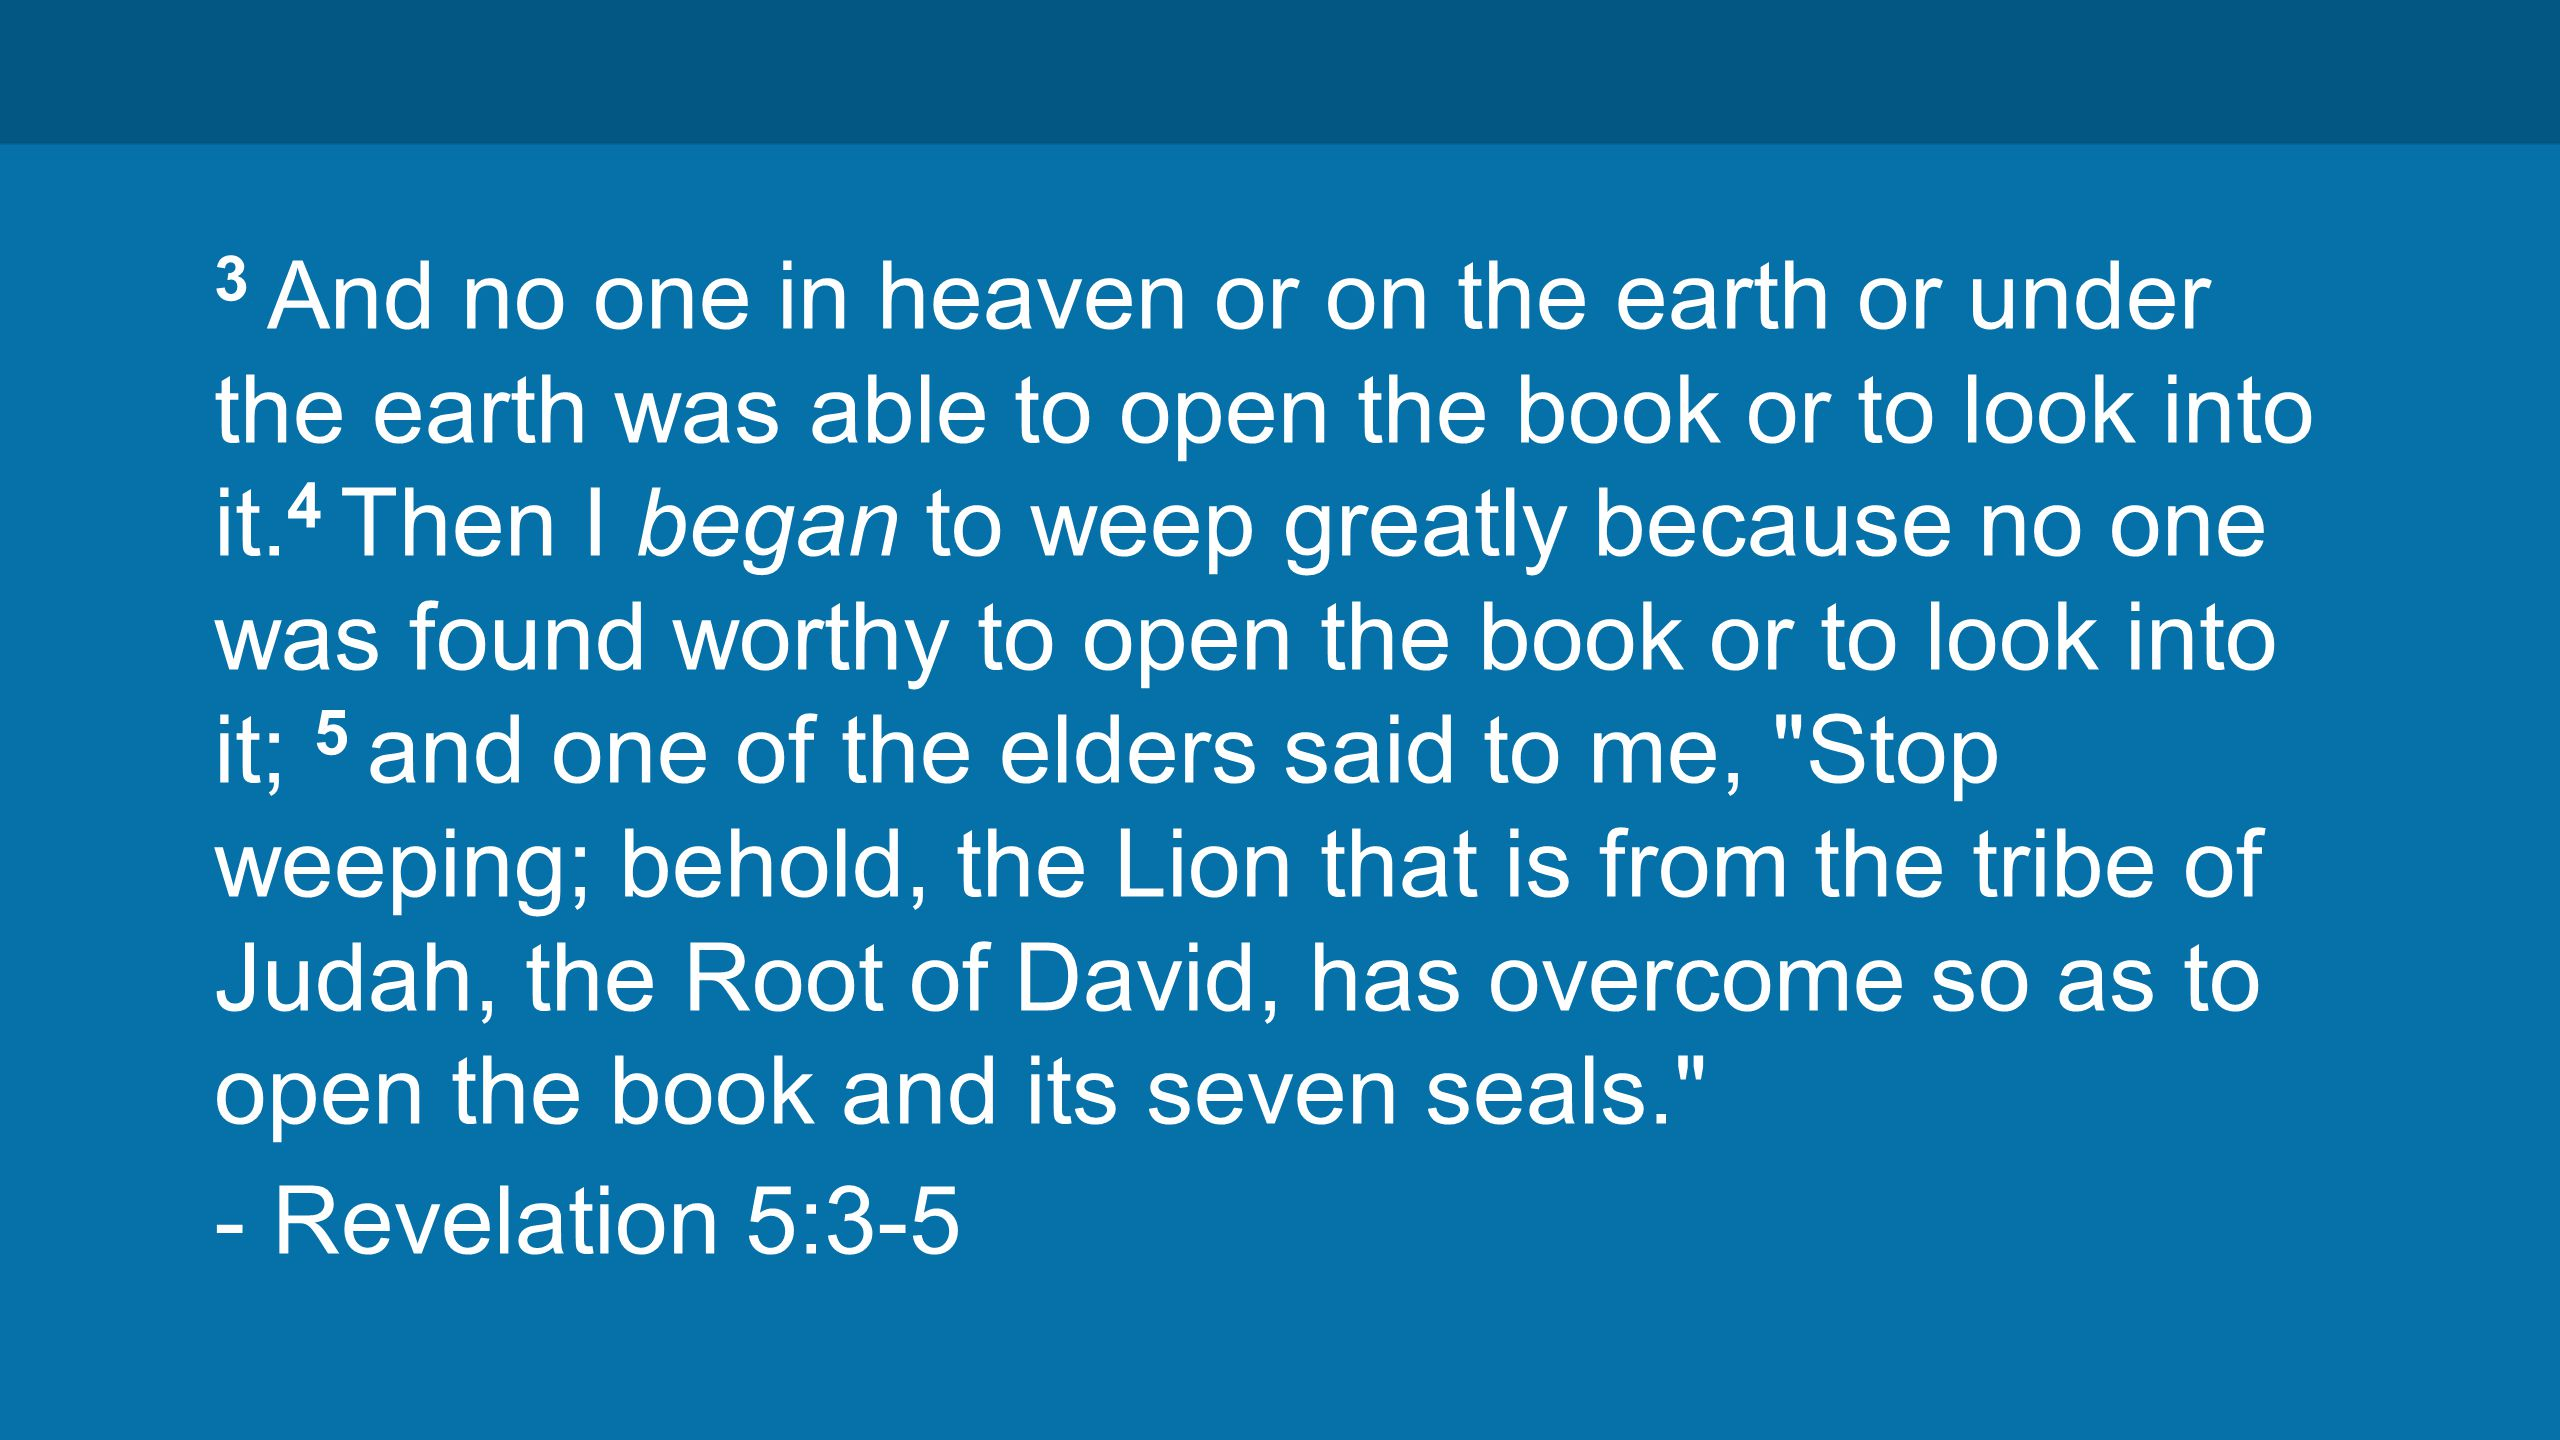 3 And no one in heaven or on the earth or under the earth was able to open the book or to look into it.